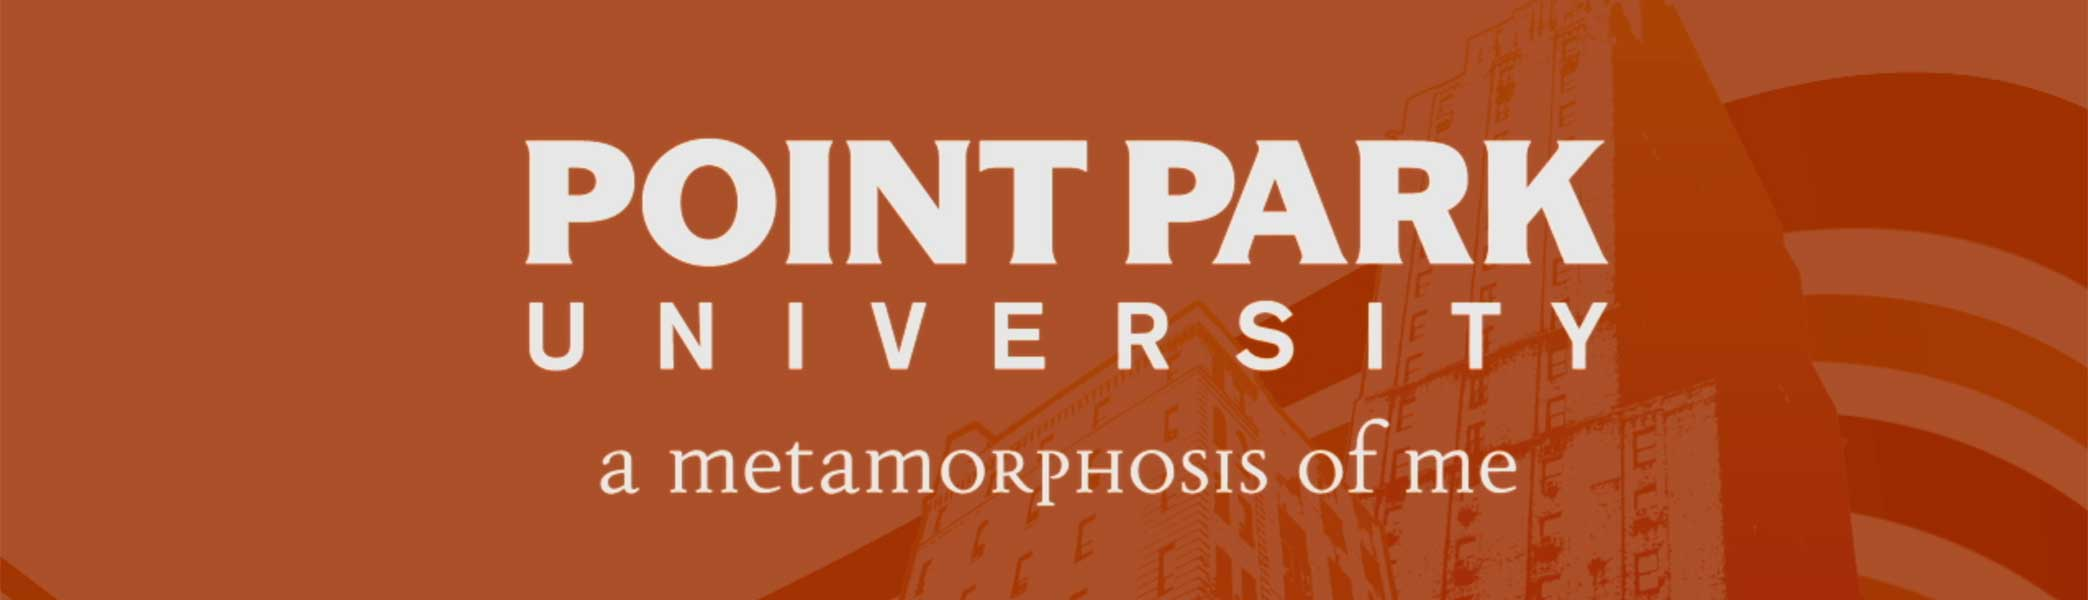 Point Park University Metamorphis adult video